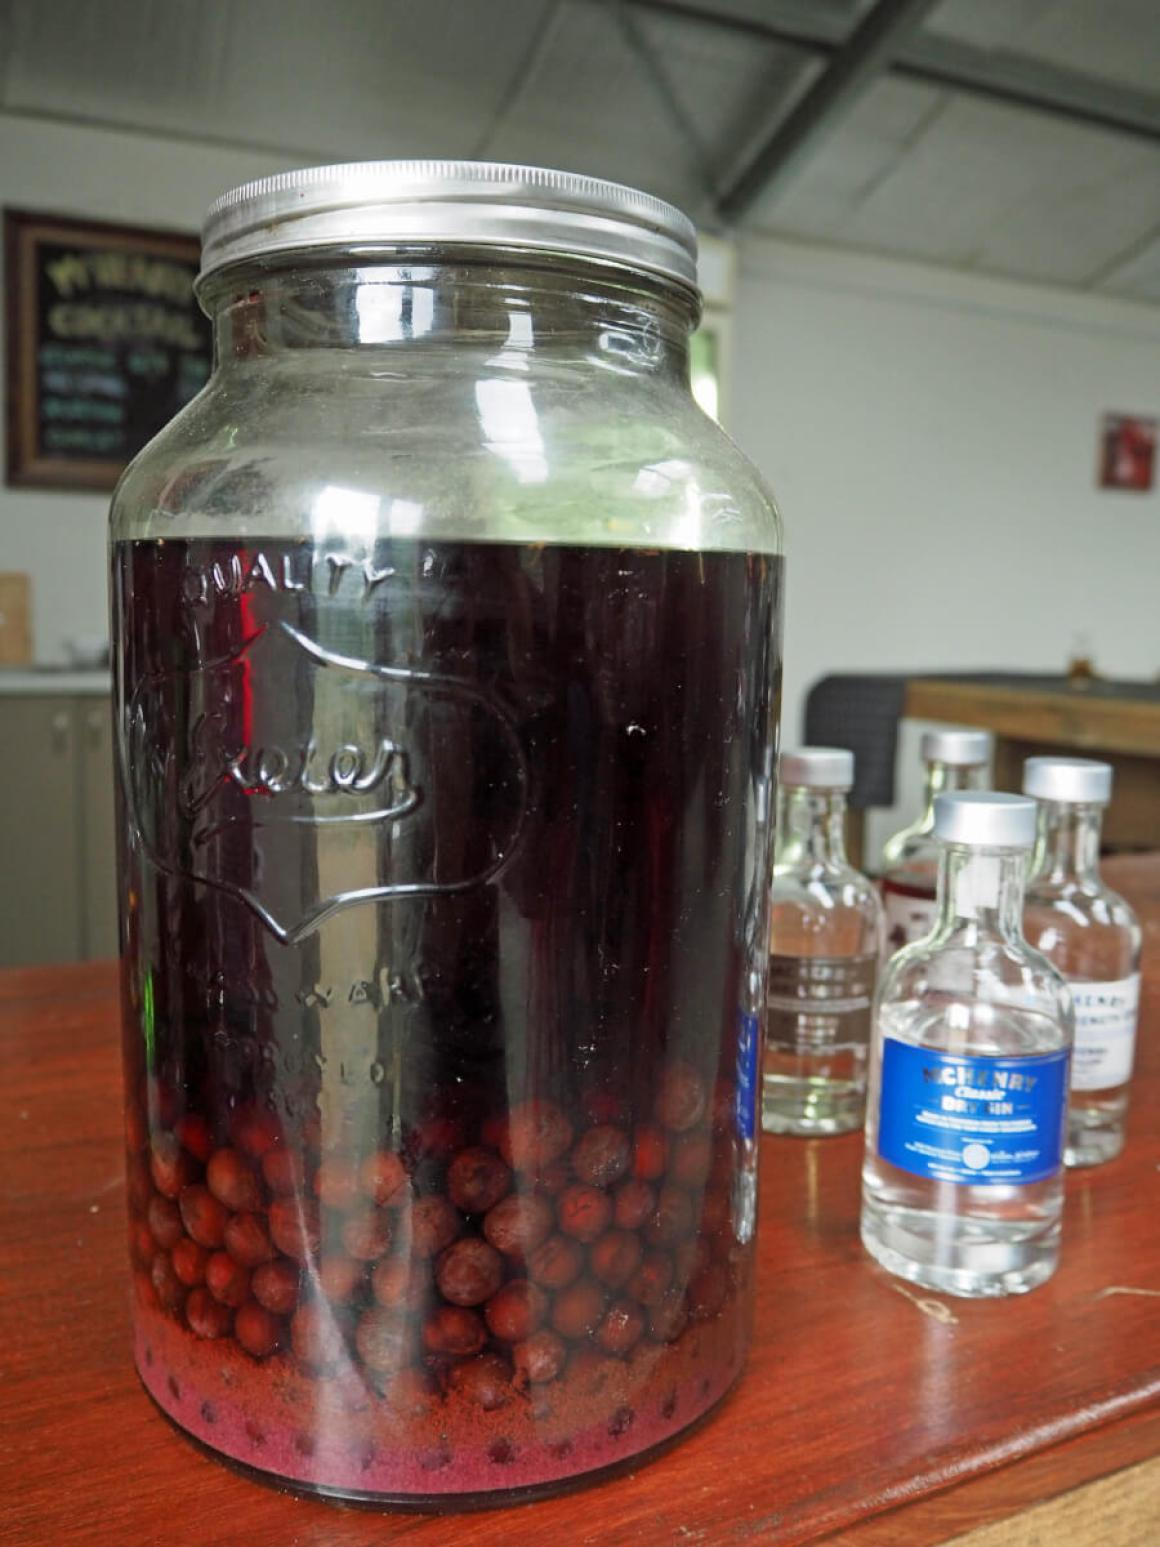 sloe-berries-in-a-jar